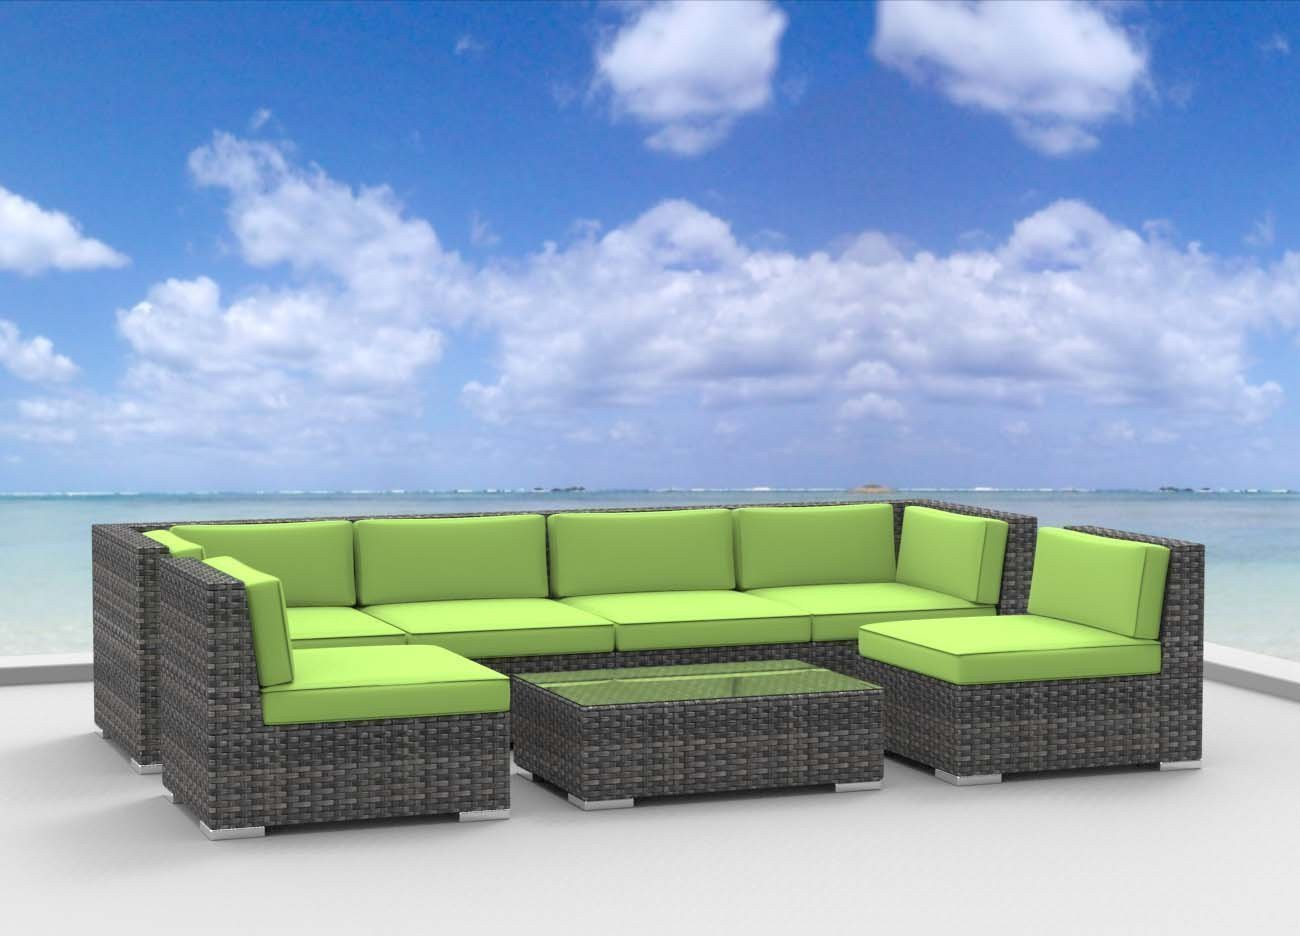 Urban Furnishing.net - OAHU 7pc Modern Outdoor Wicker Patio Furniture Modular Sofa Sectional Set, Fully Assembled - Lime Green -  - patio-furniture, patio, conversation-sets - 61qRw%2Bb4WwL -